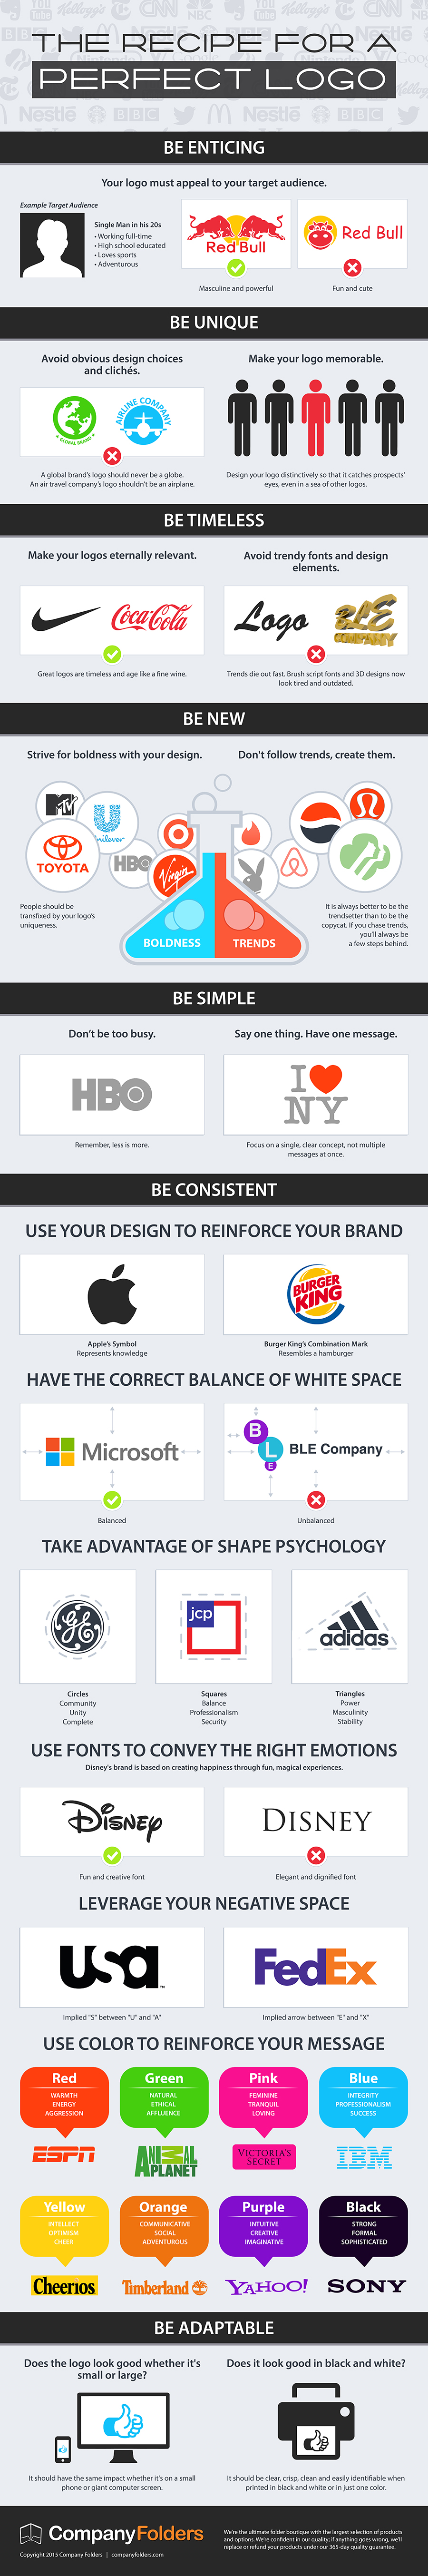 The Recipe For A Perfect Logo by CompanyFolders